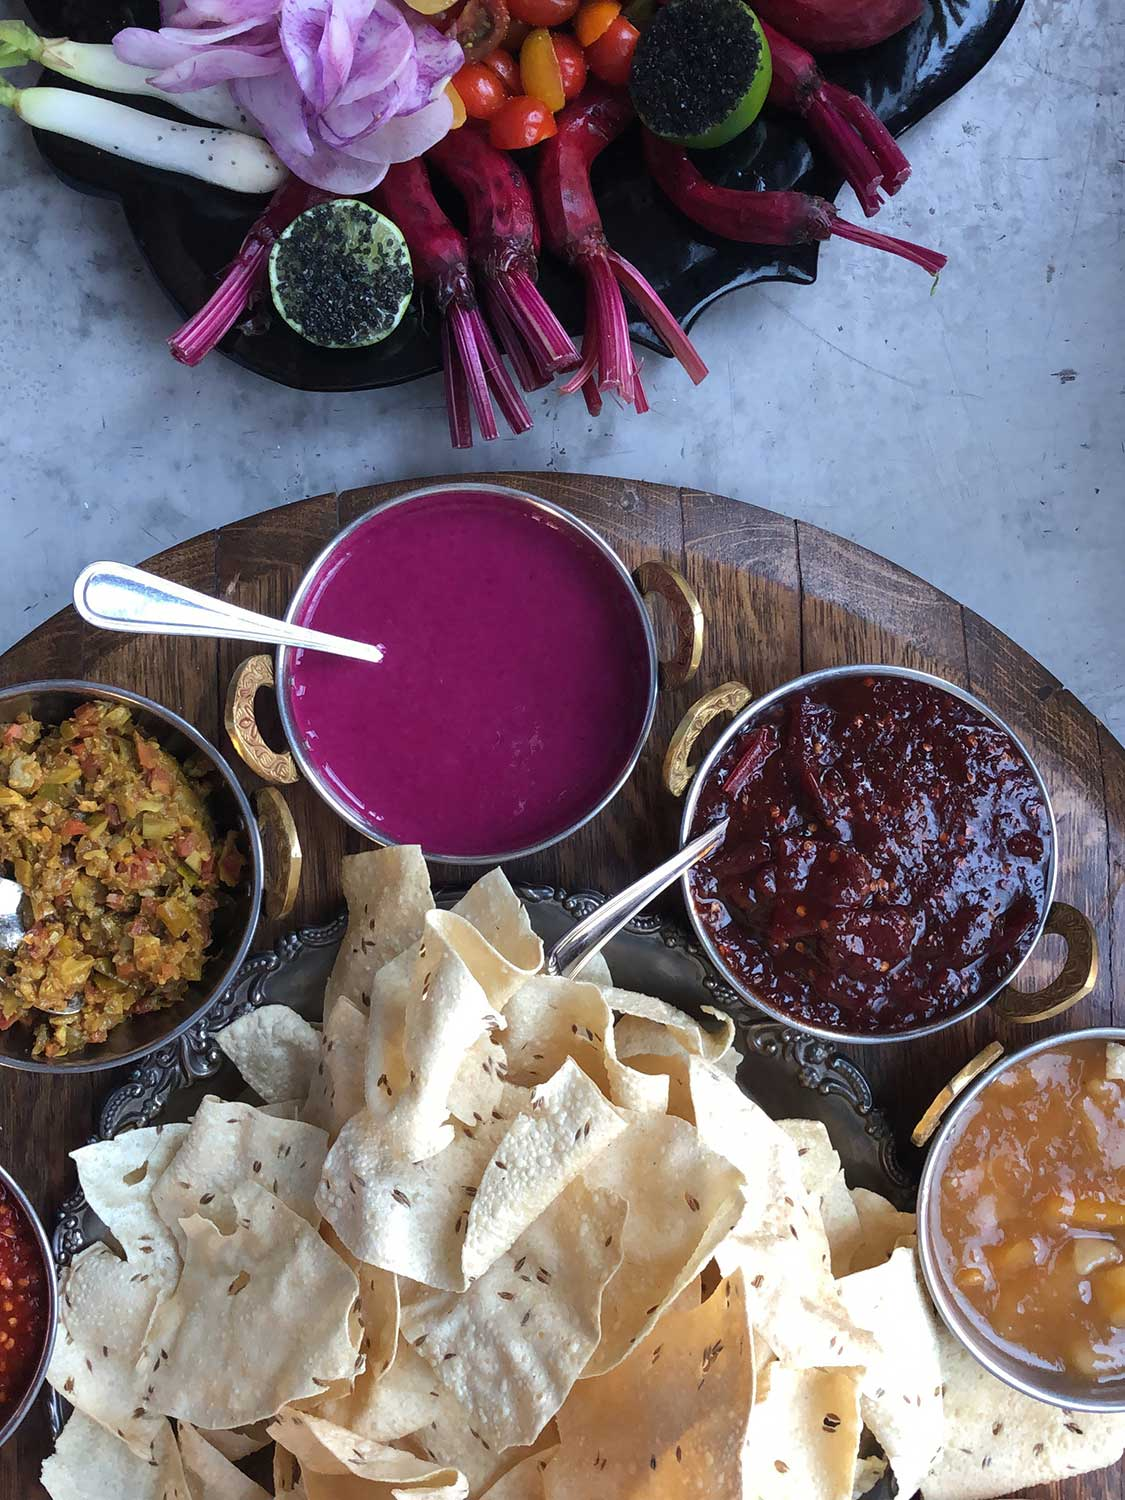 Chef Jessi Singh Brings Biryani in an Urchin and Volcanic Salt to the SAVEUR Test Kitchen